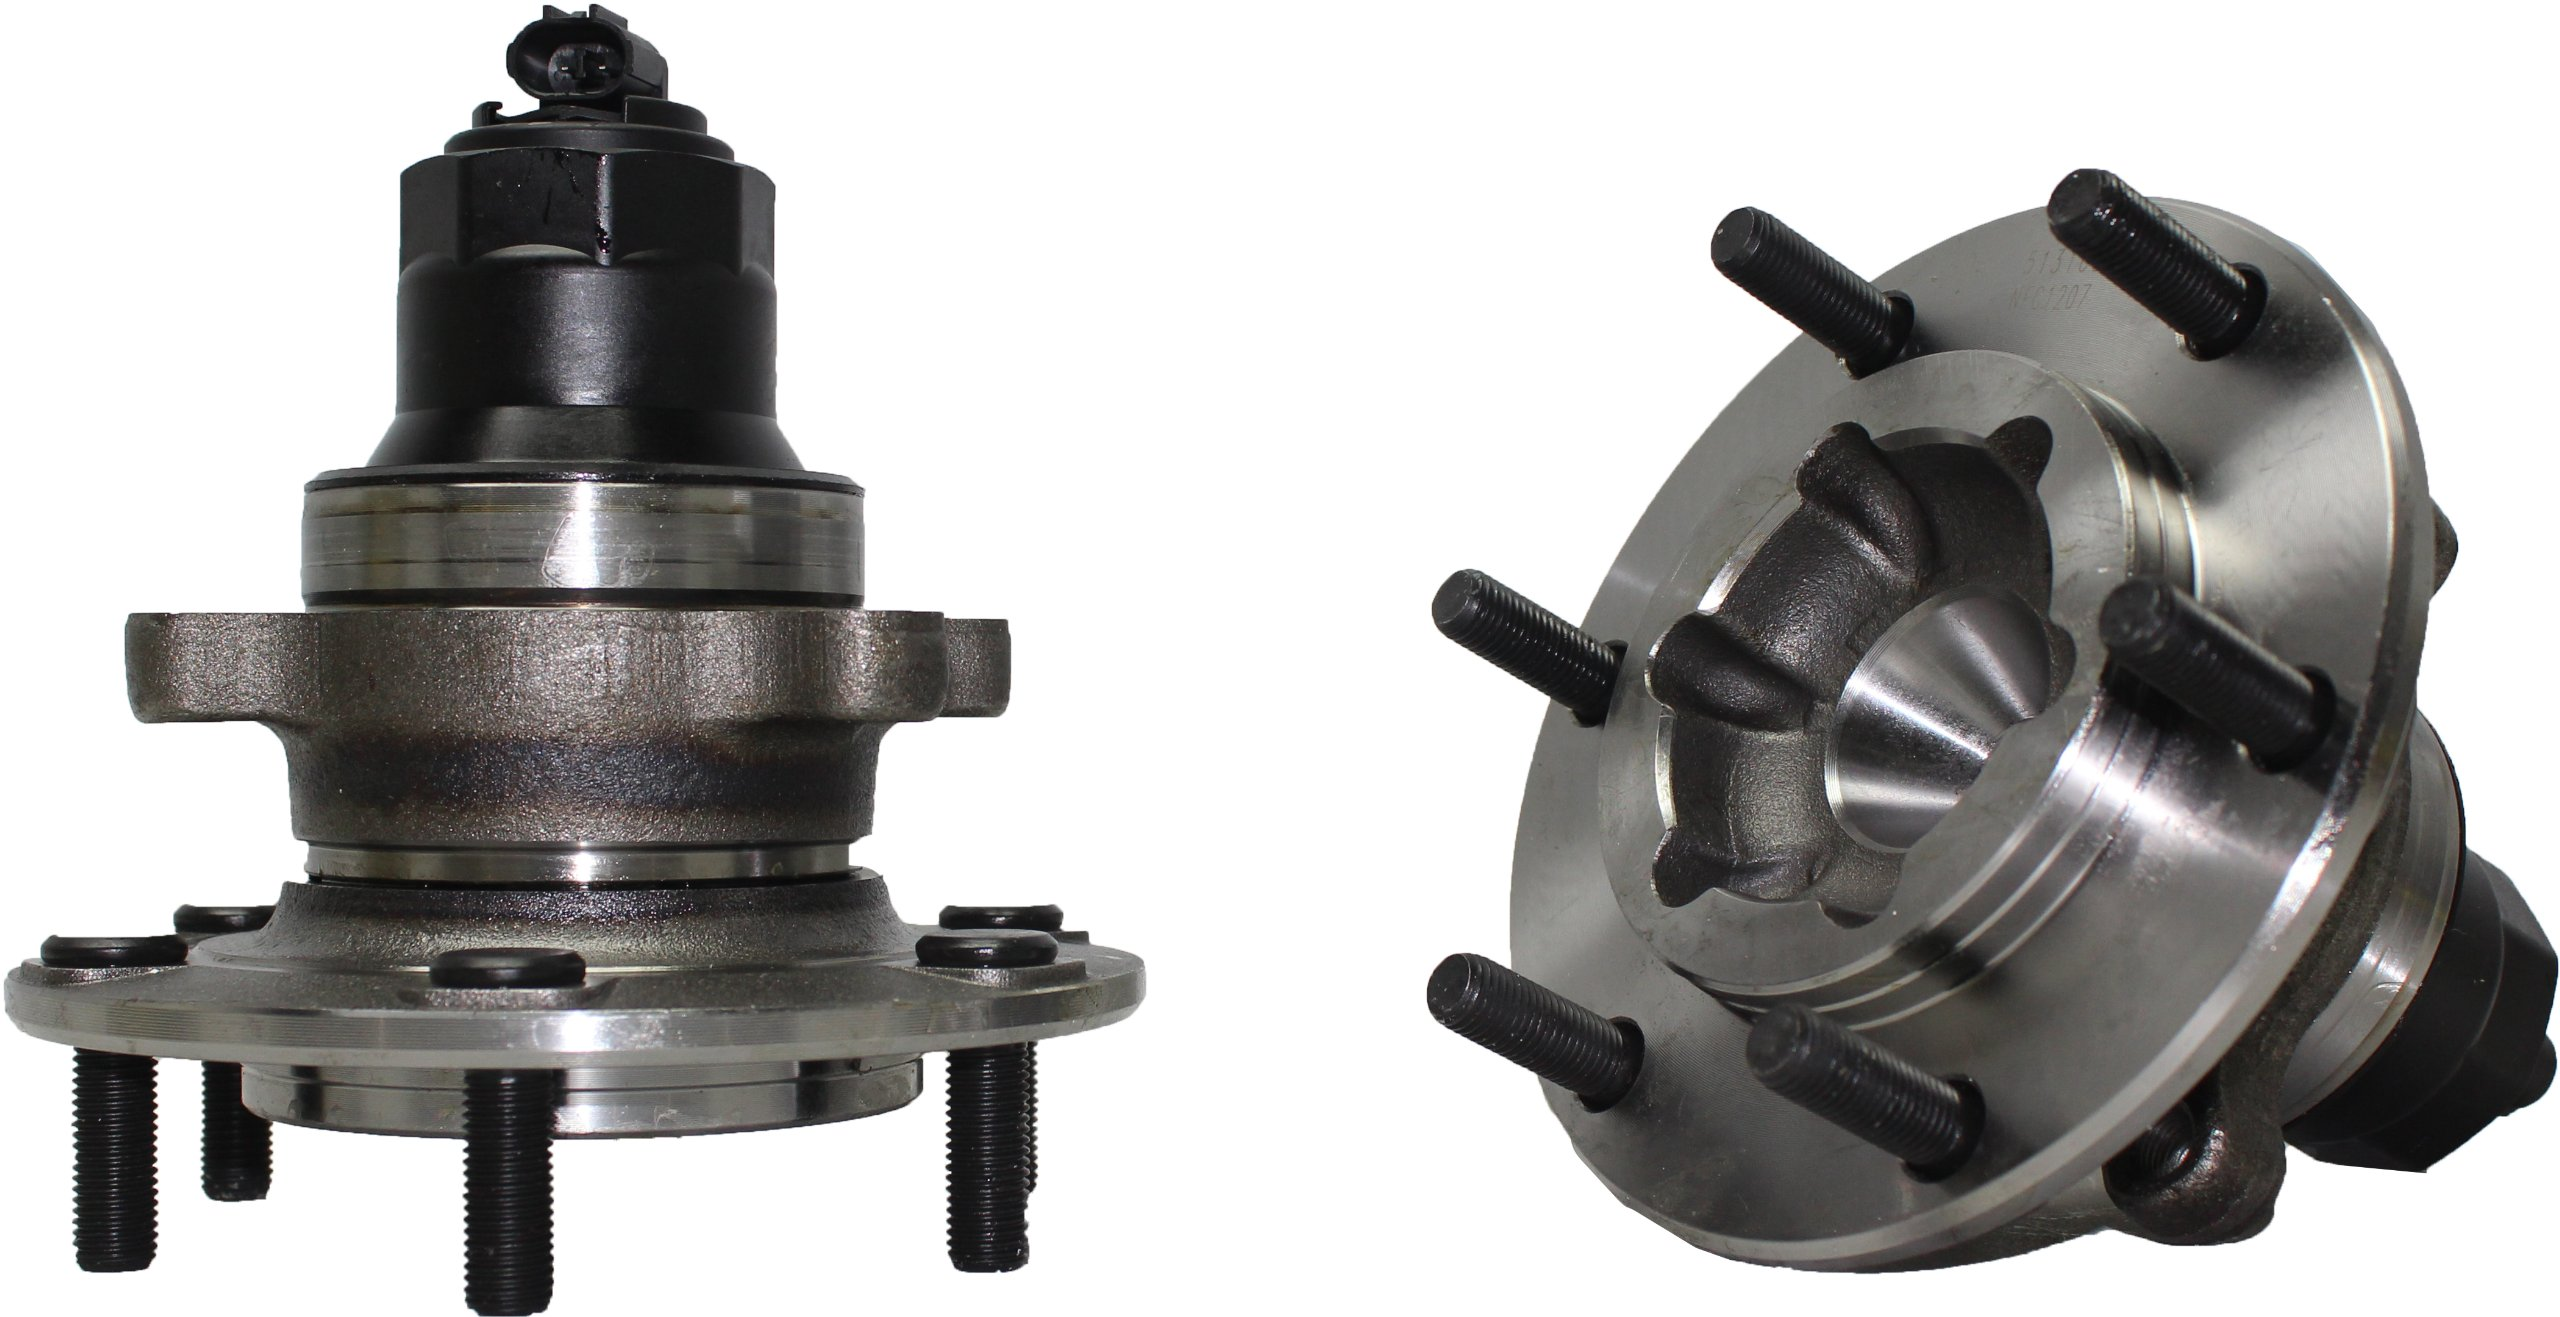 Detroit Axle - Front Wheel Bearing & Hub Assembly Driver or Passenger Side fits 2002-2004 Isuzu Axiom 2WD - [02-04 Rodeo 2wd] - 02-03 Rodeo Sport 2wd - [02 Honda Passport 2WD] by Detroit Axle (Image #3)